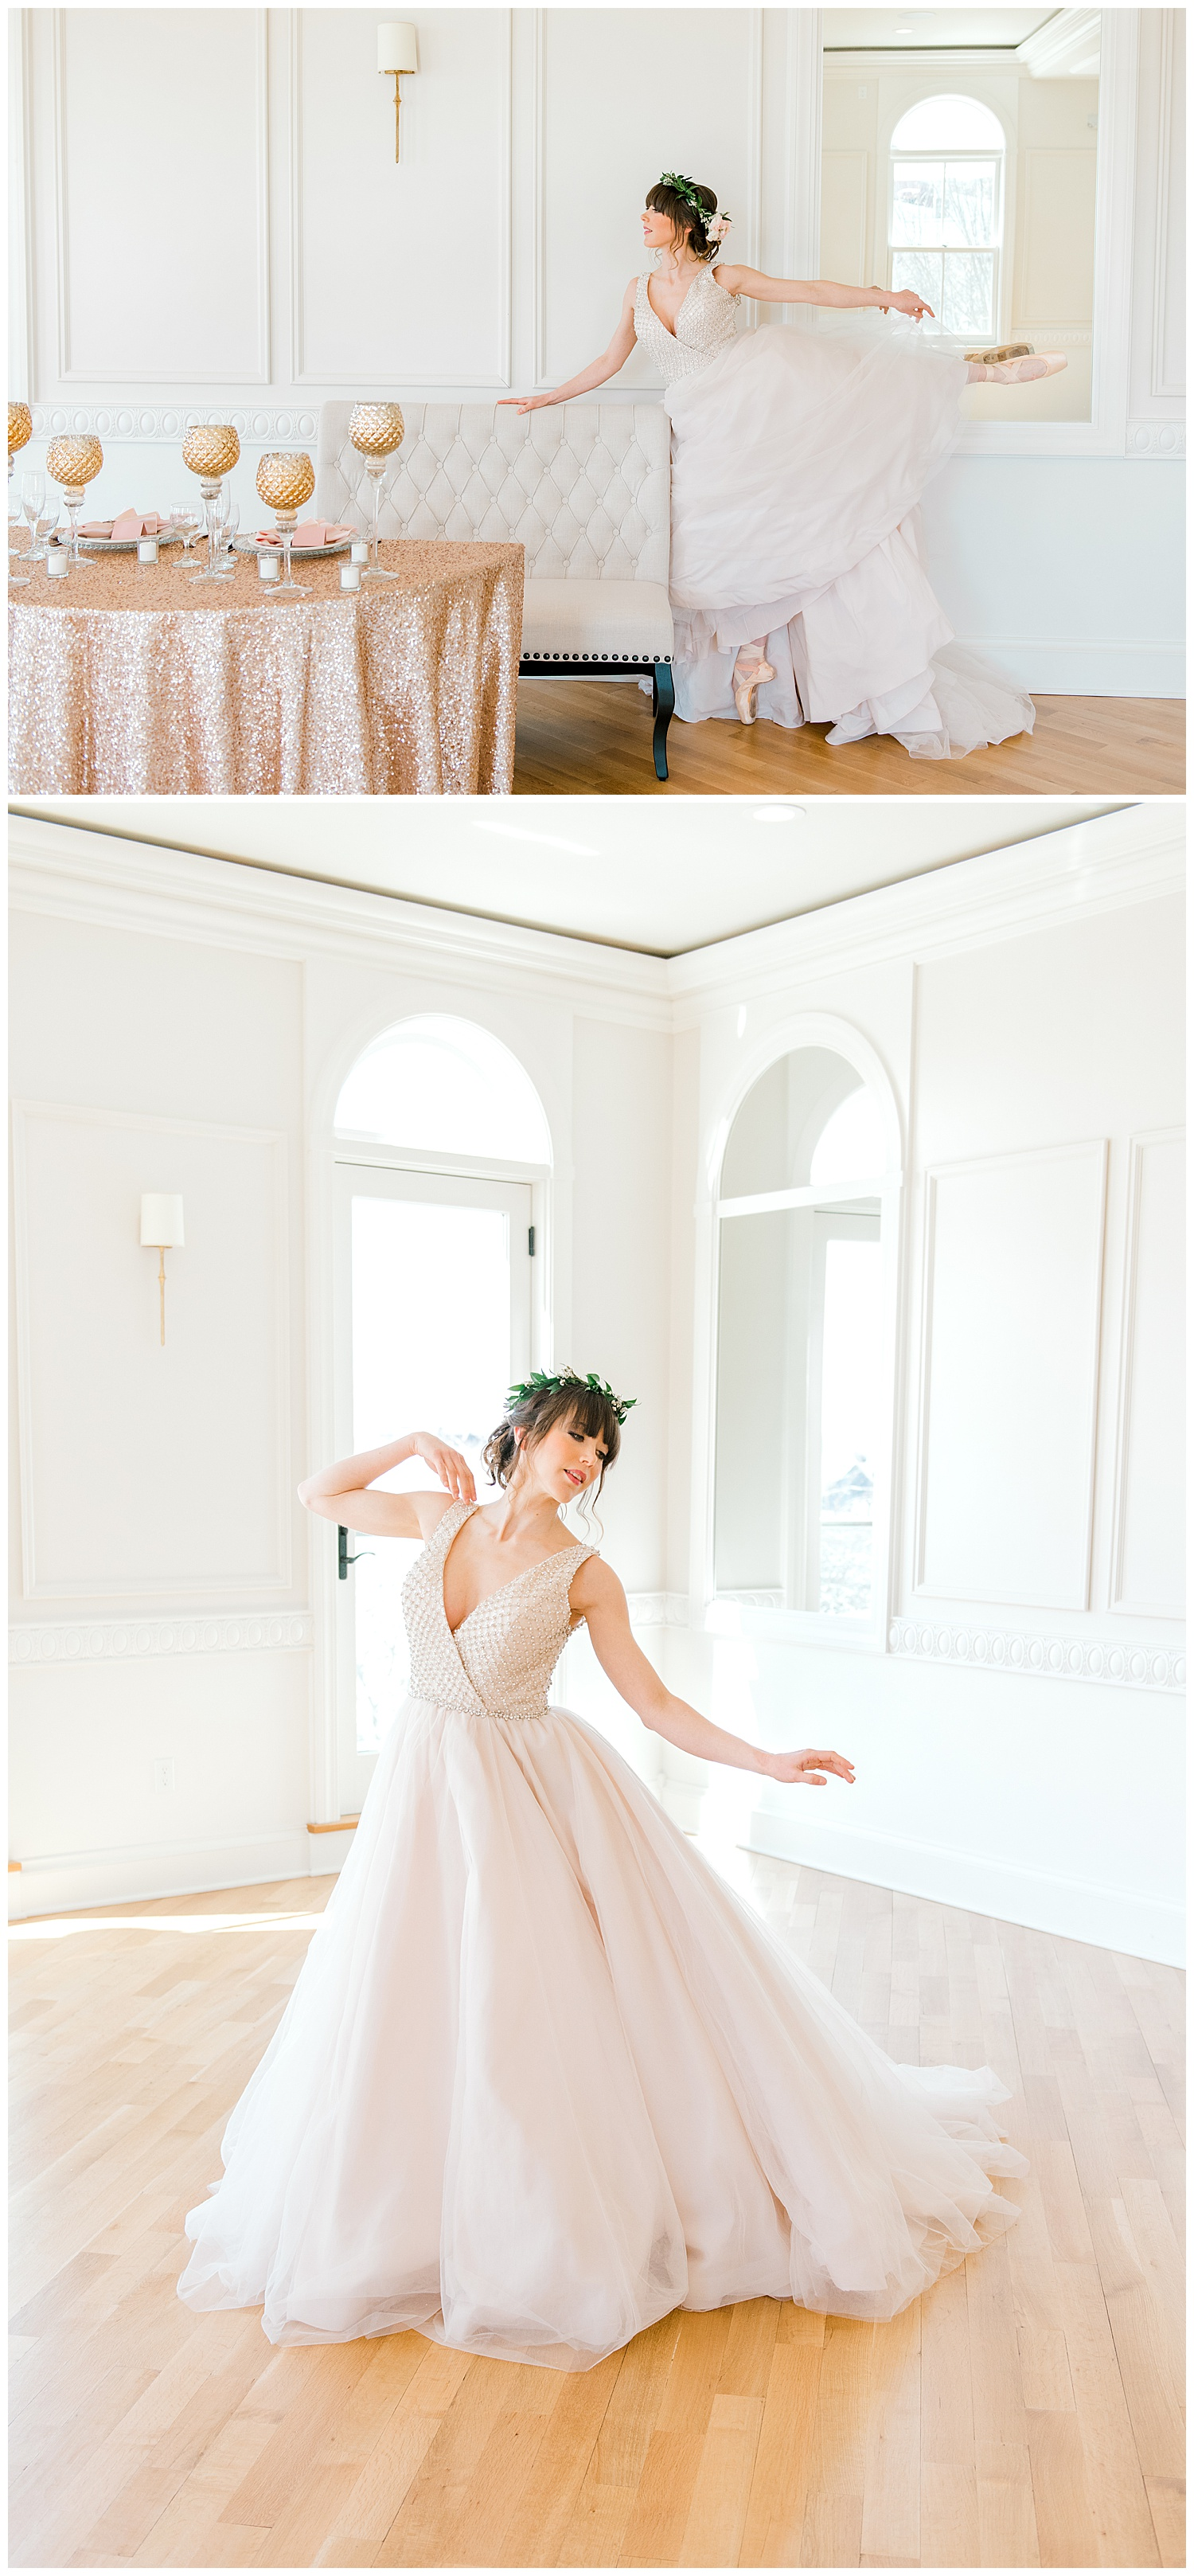 blush-ballerina-wedding-photography-newport-rhode-island-45.jpg